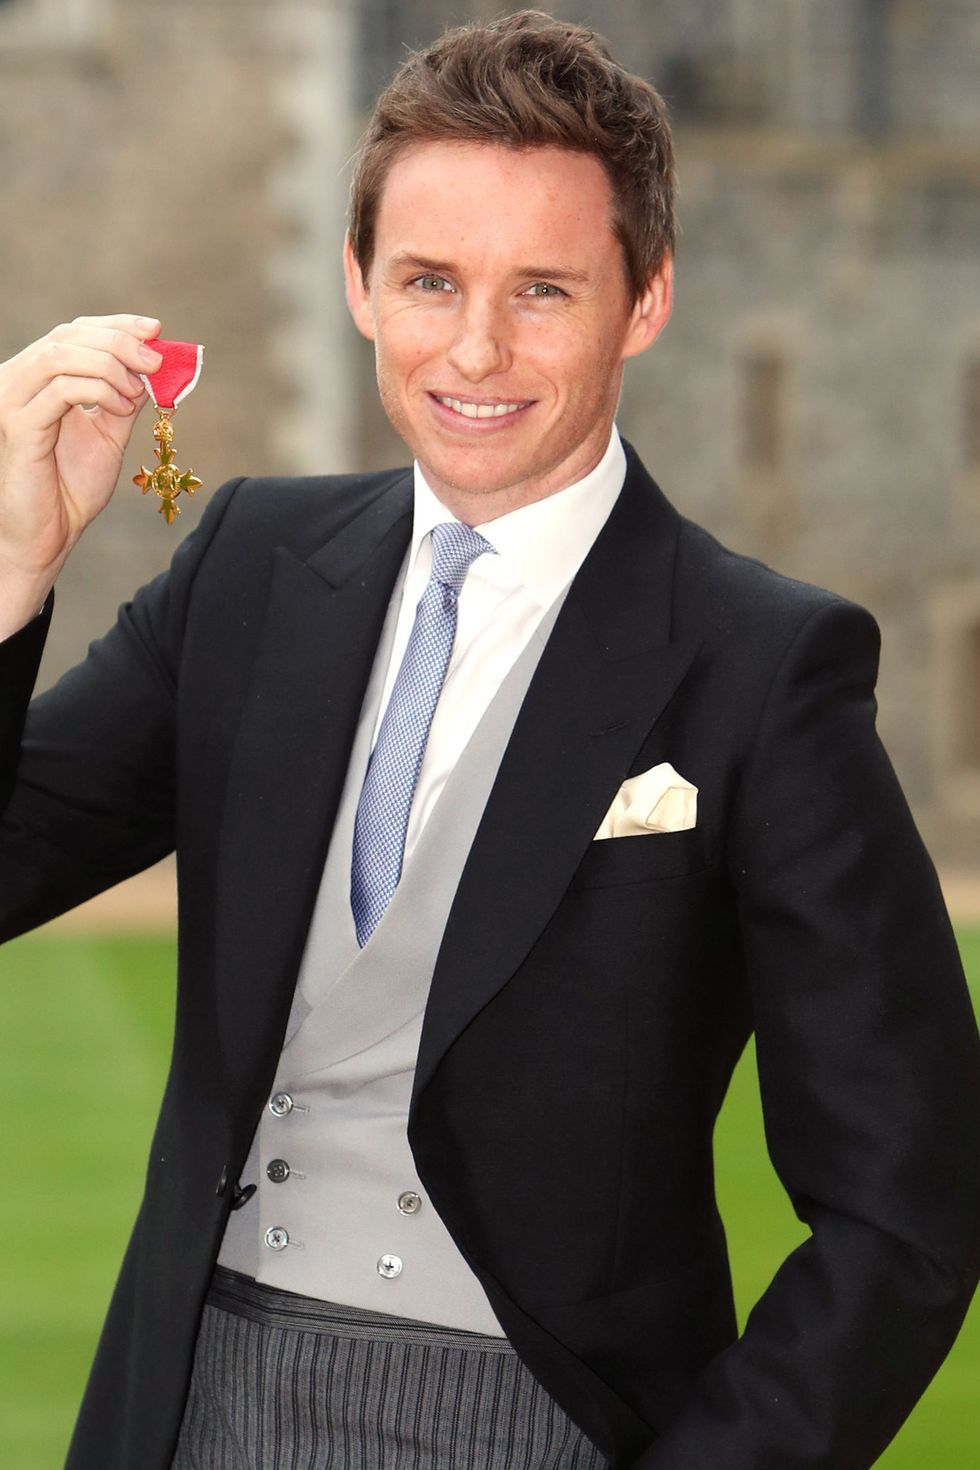 41 Celebrities With Royal Titles - Famous People with Royal Honours